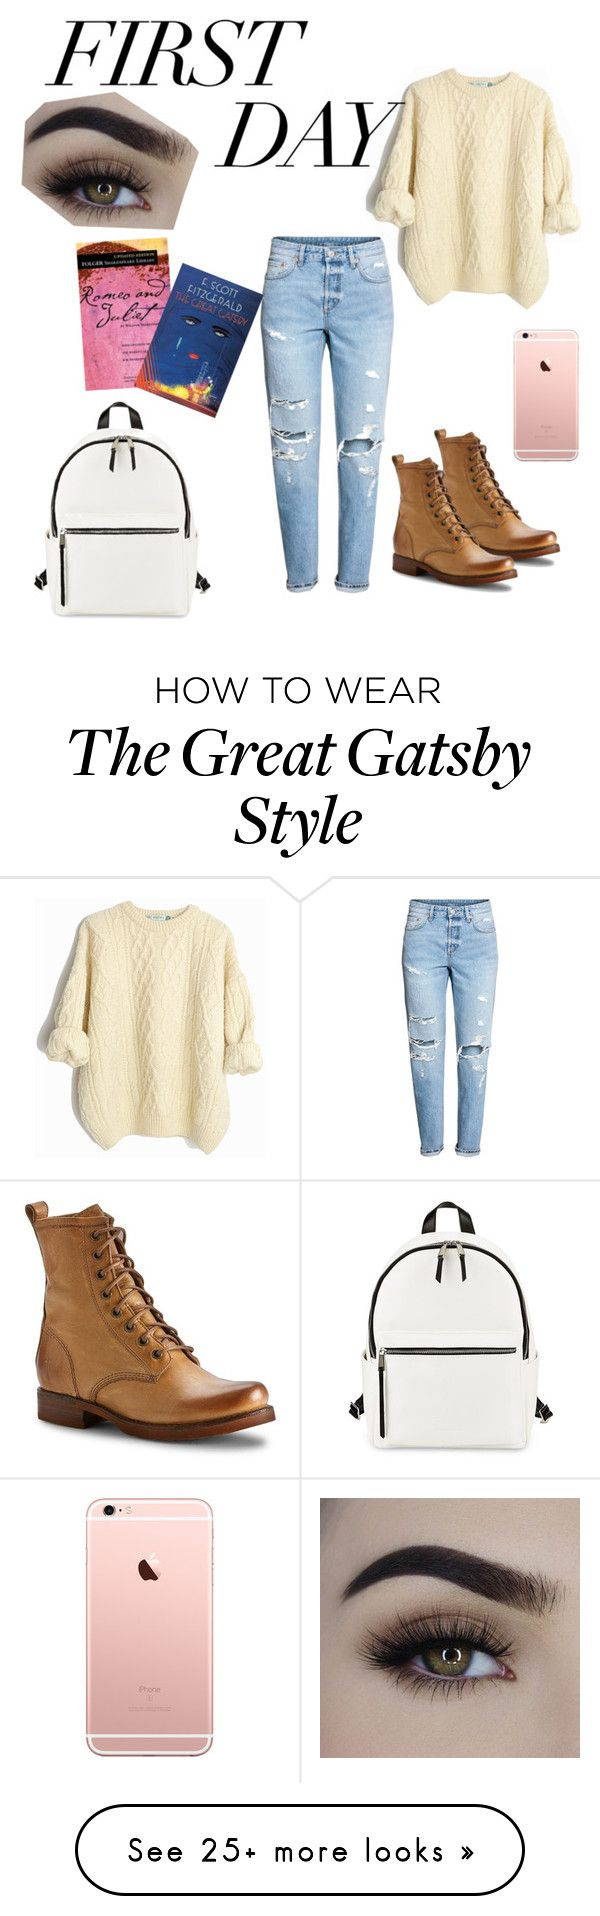 """Untitled #102"" by beckyneedstostop on Polyvore featuring H&M, French Connection and Frye"